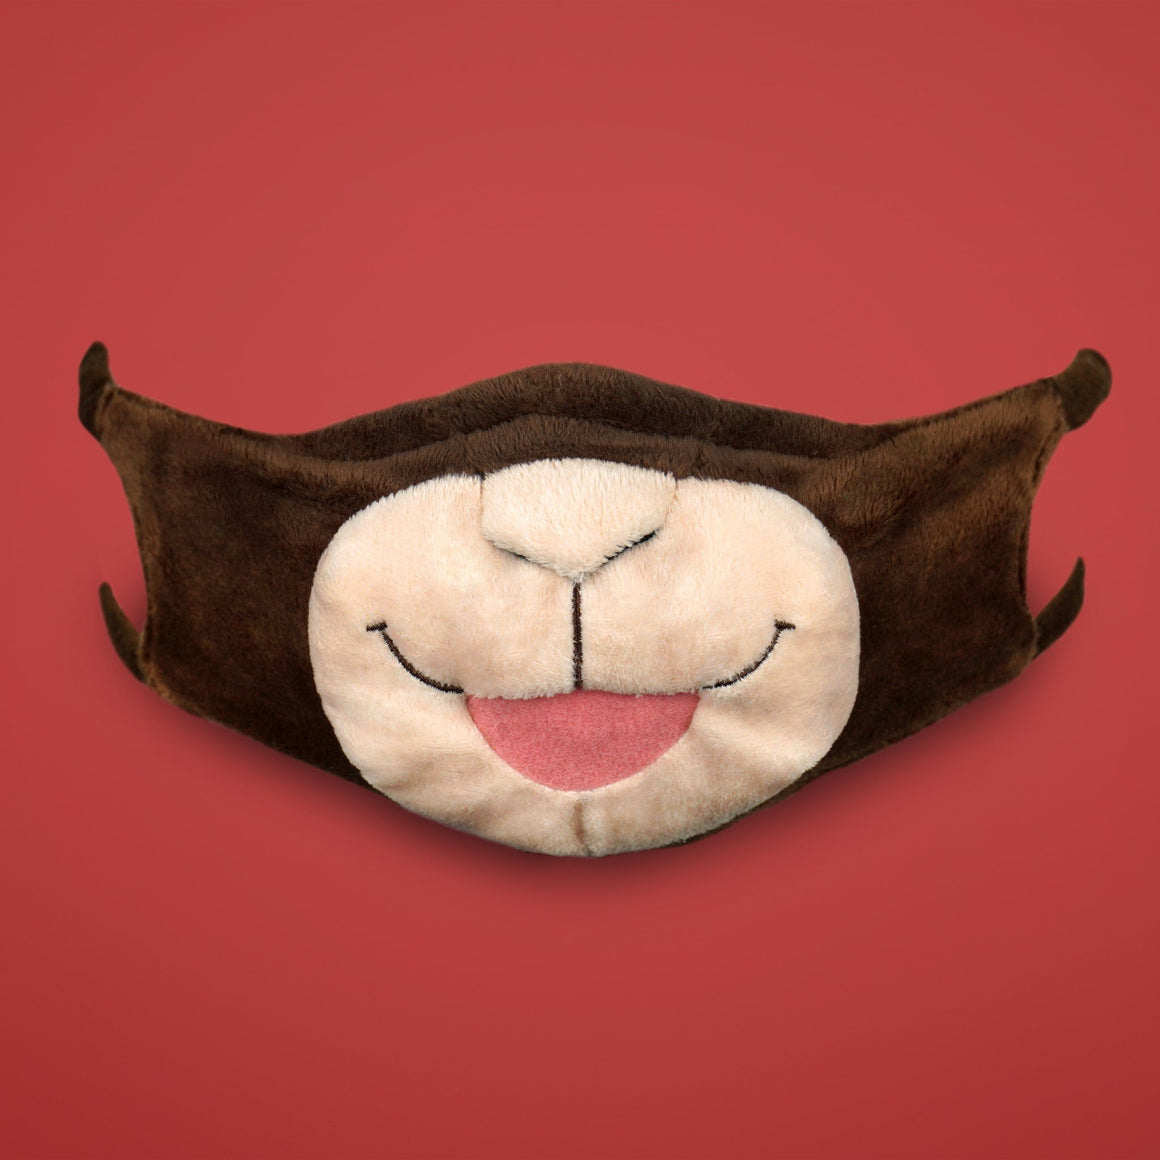 Lil' Buddies Monkey Mask - Cute Dose